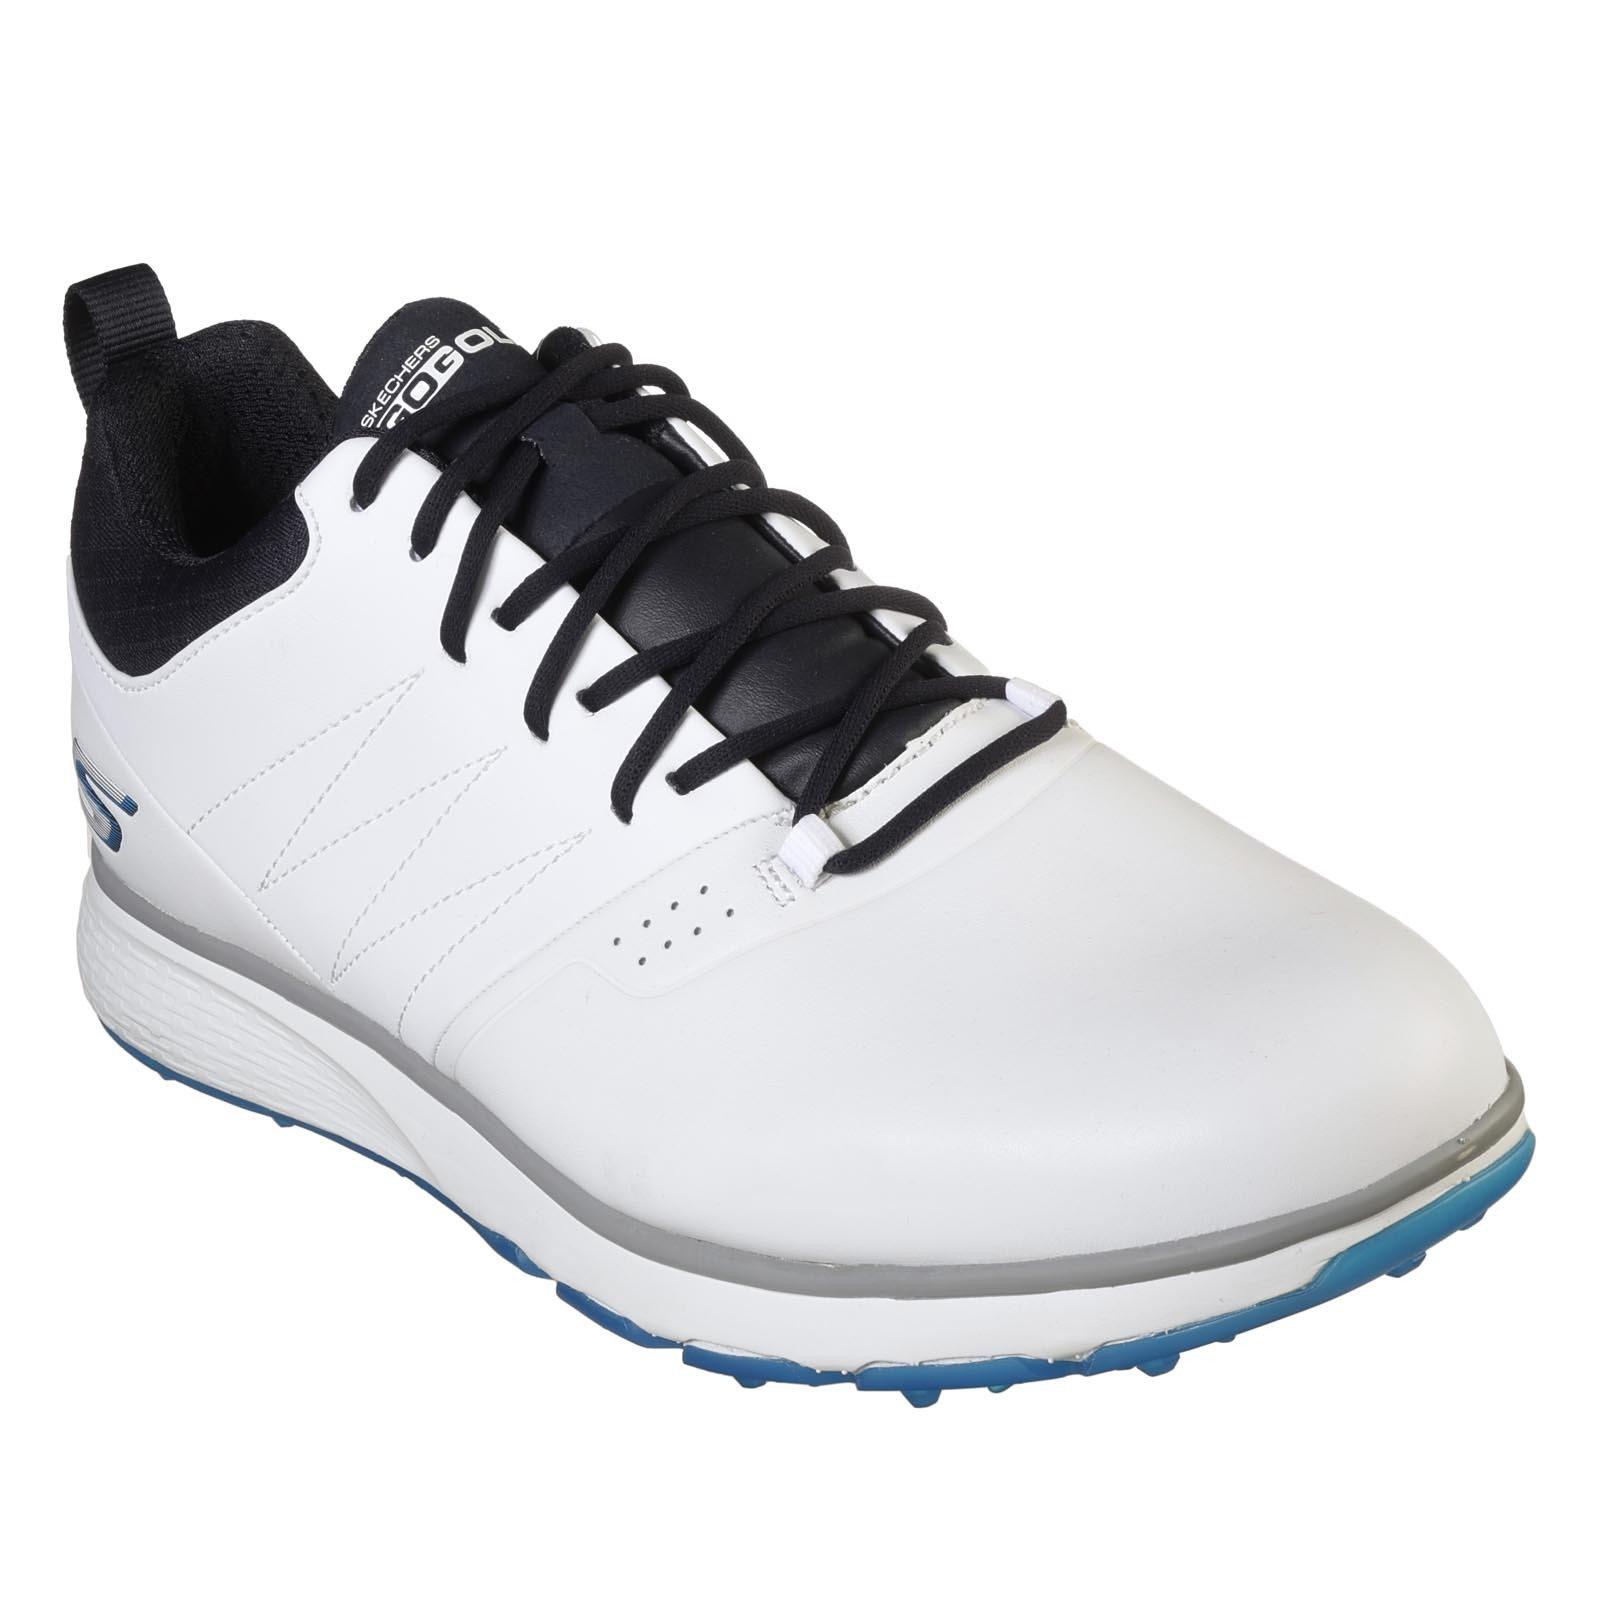 experiencia Oblicuo ratón  Skechers Mojo Elite Punch Shot Golf Shoes